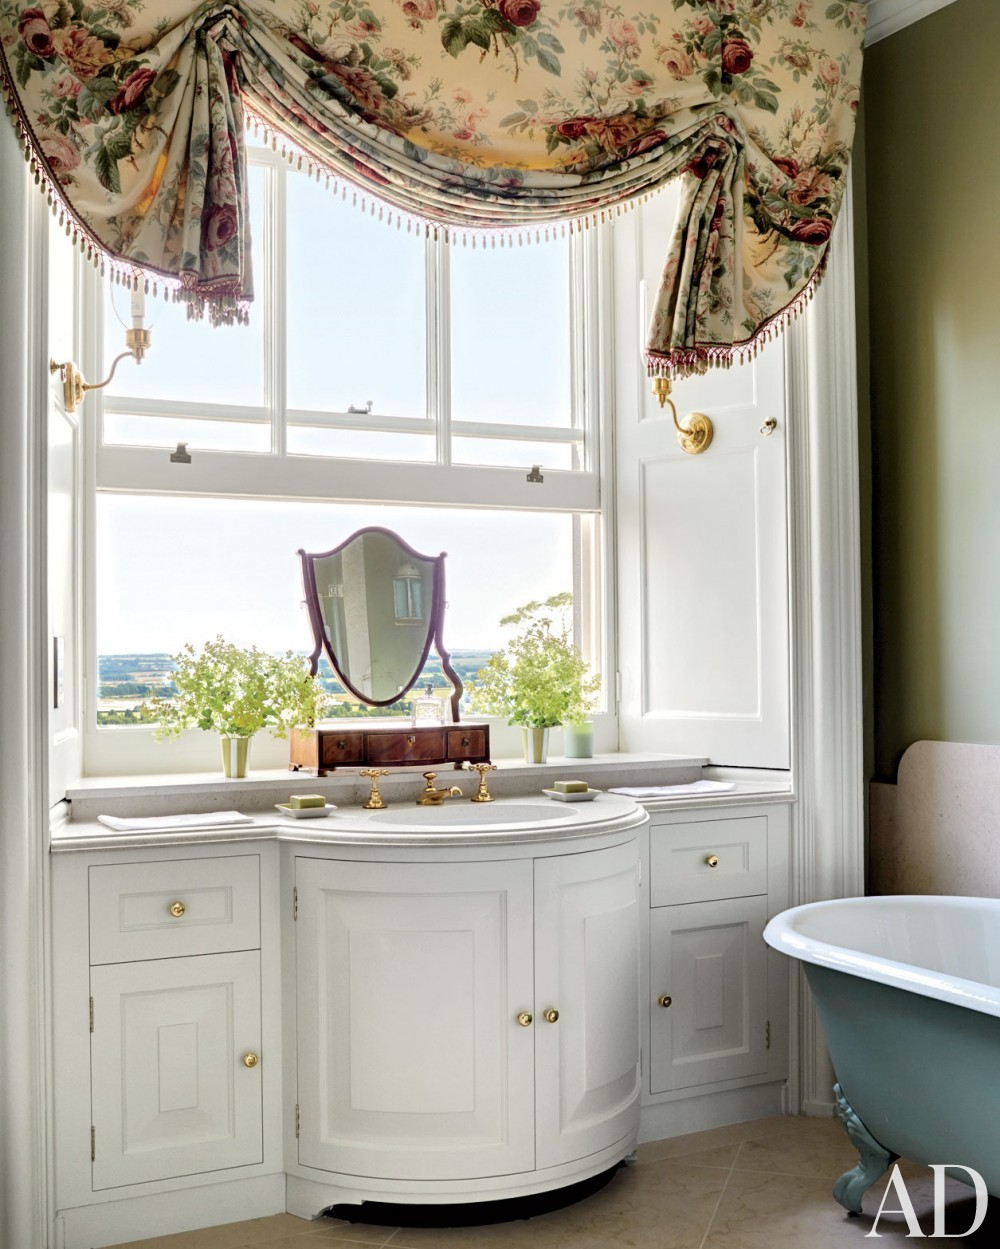 Traditional Bathroom by Mark Gillette in Burley on the Hill, England